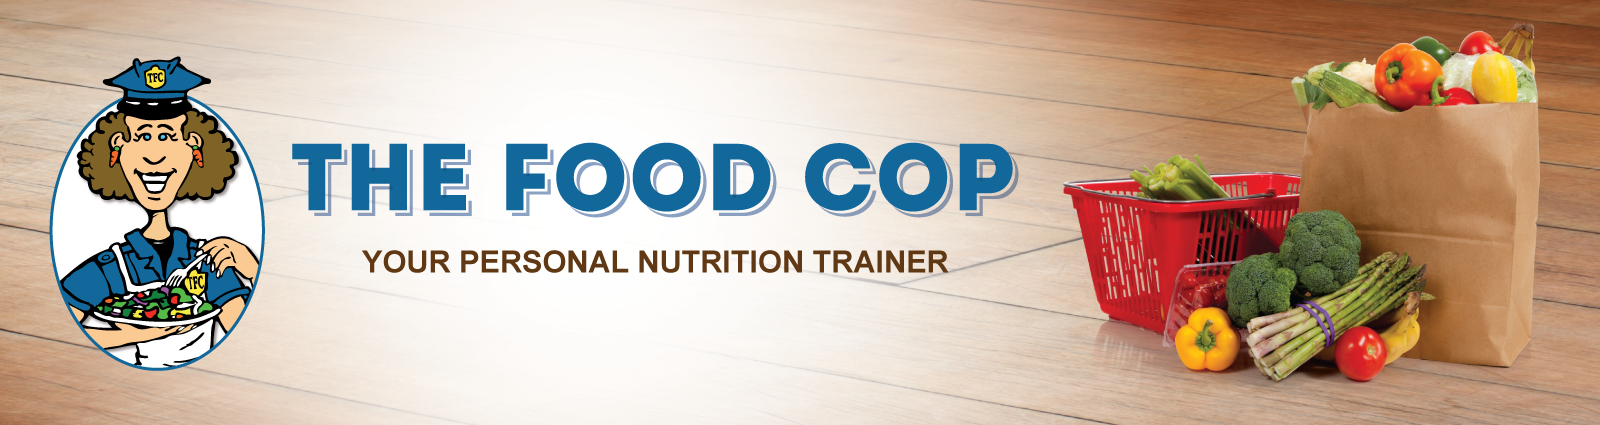 The Food Cop - Clean Healthy Eating